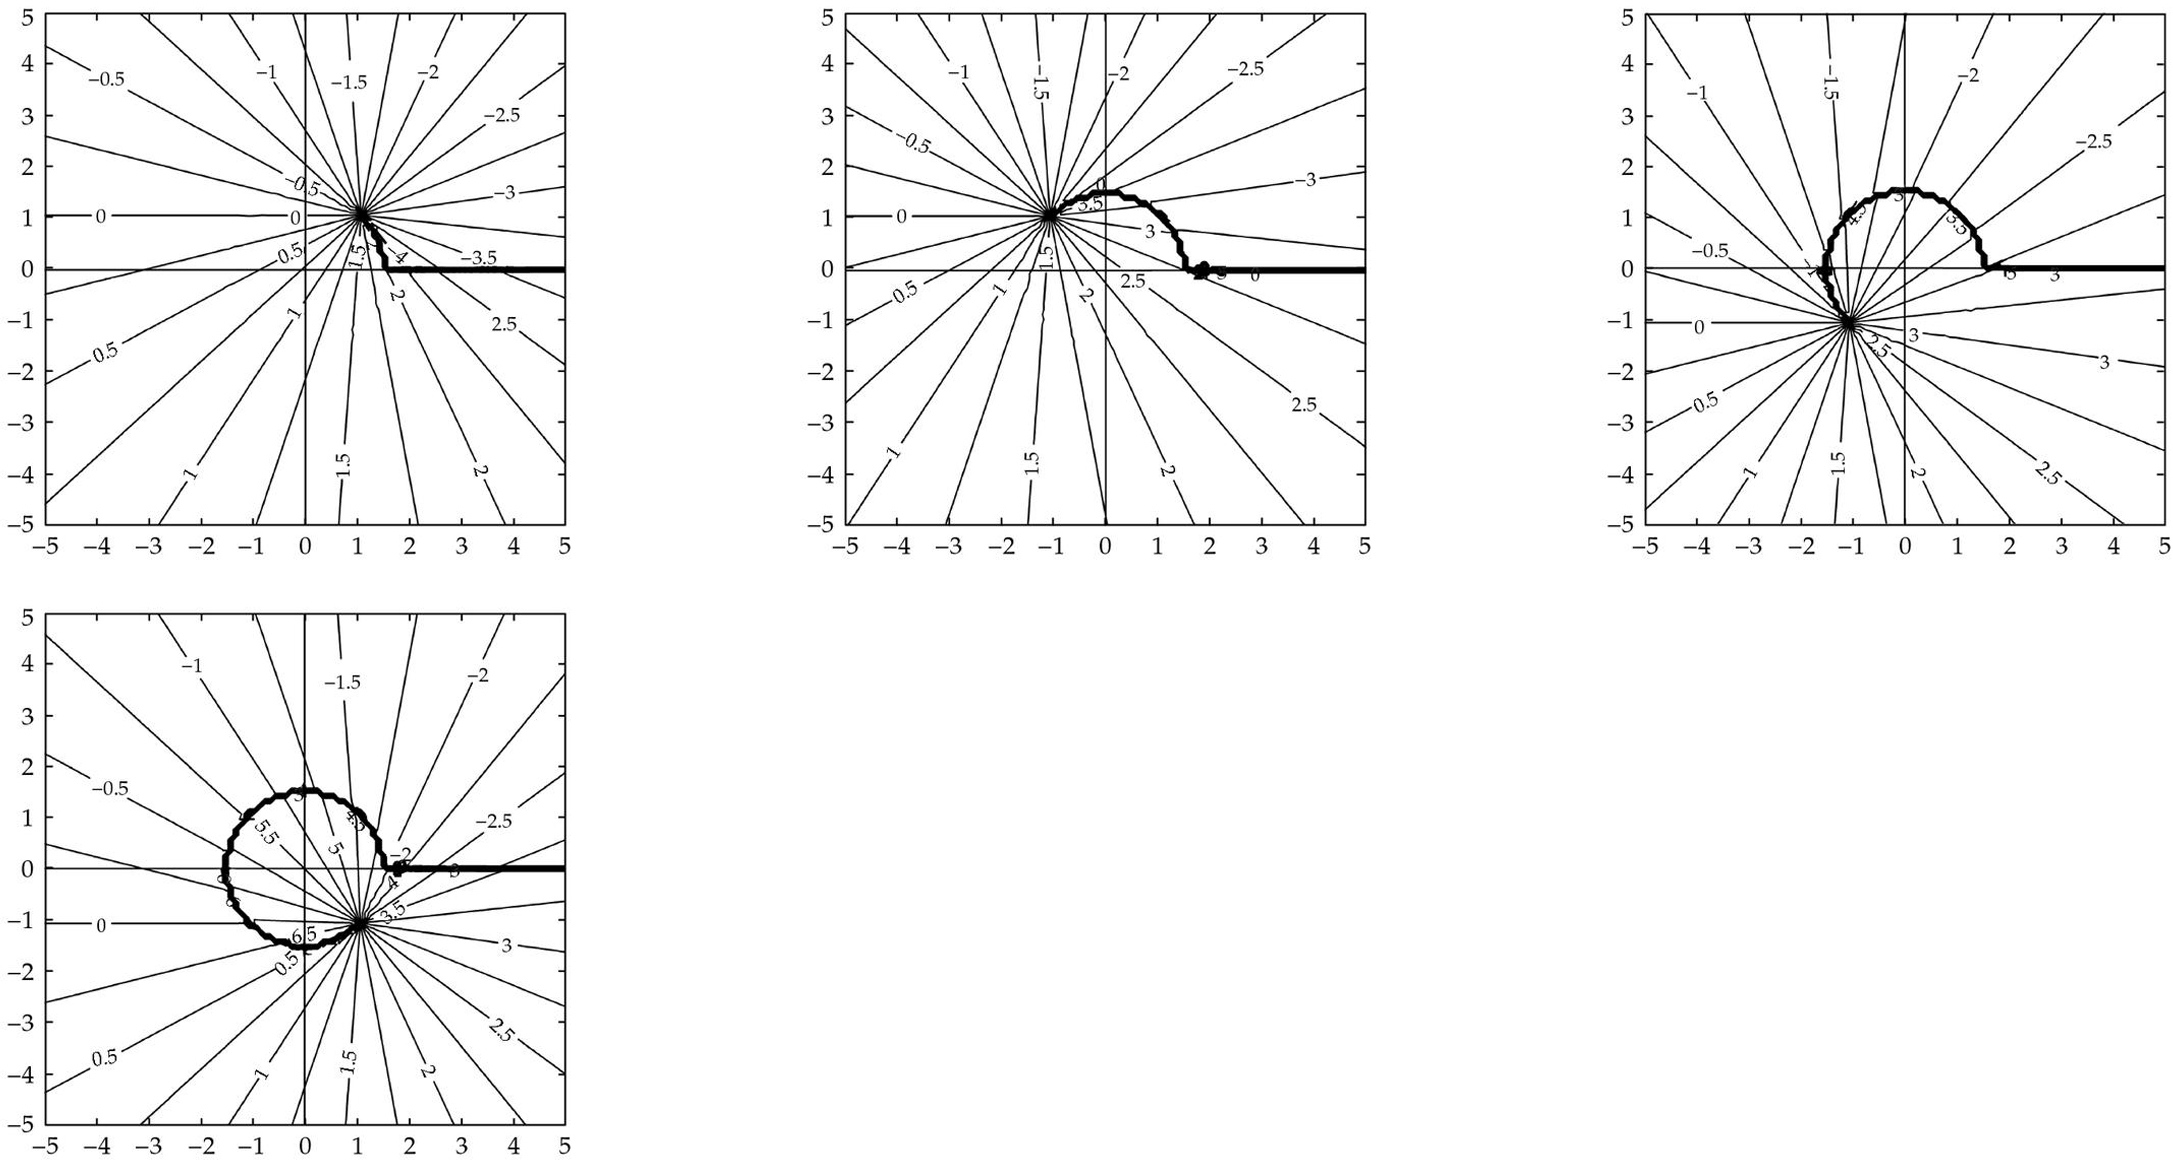 http://static-content.springer.com/image/art%3A10.1155%2F2010%2F731741/MediaObjects/13661_2009_Article_953_Fig3_HTML.jpg